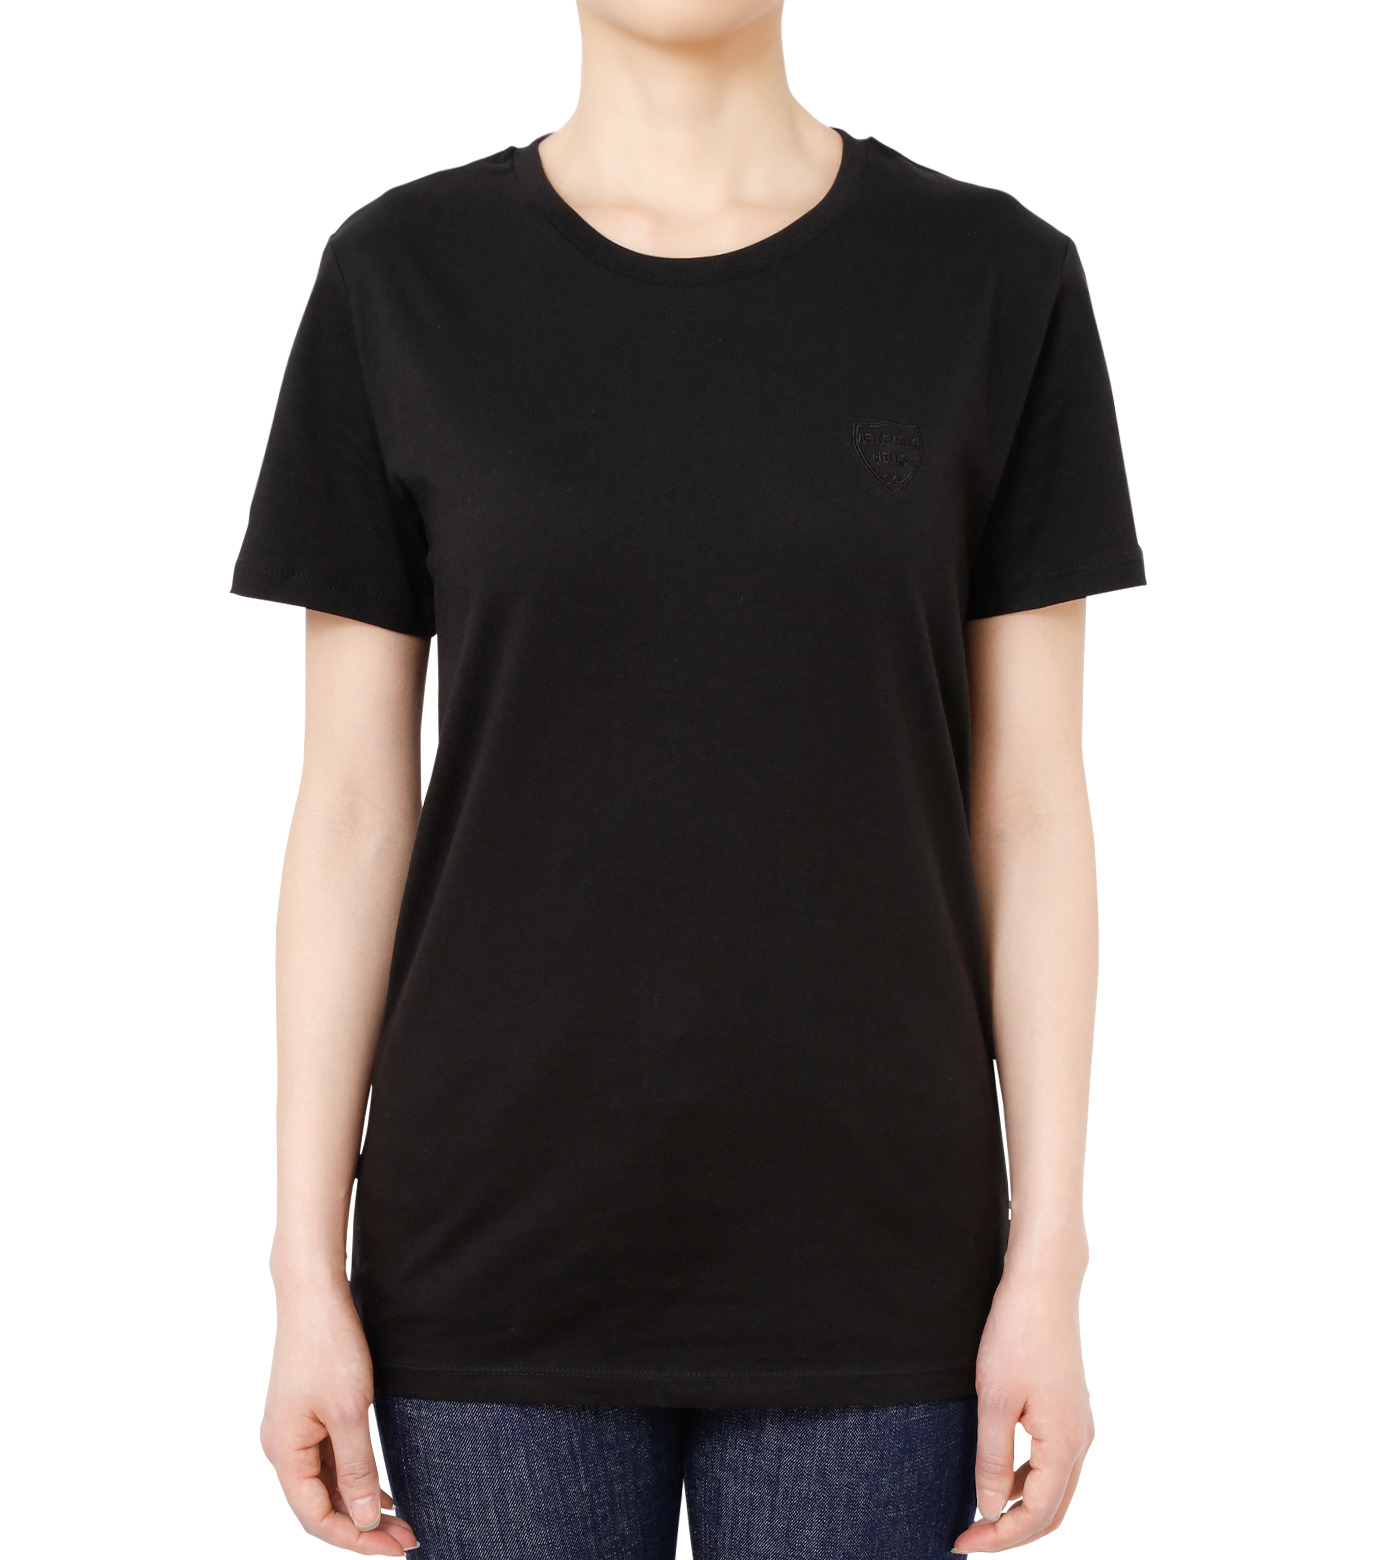 No One(ノーワン)のEmblem T-shirt-BLACK(カットソー/cut and sewn)-SS980B-13 拡大詳細画像1